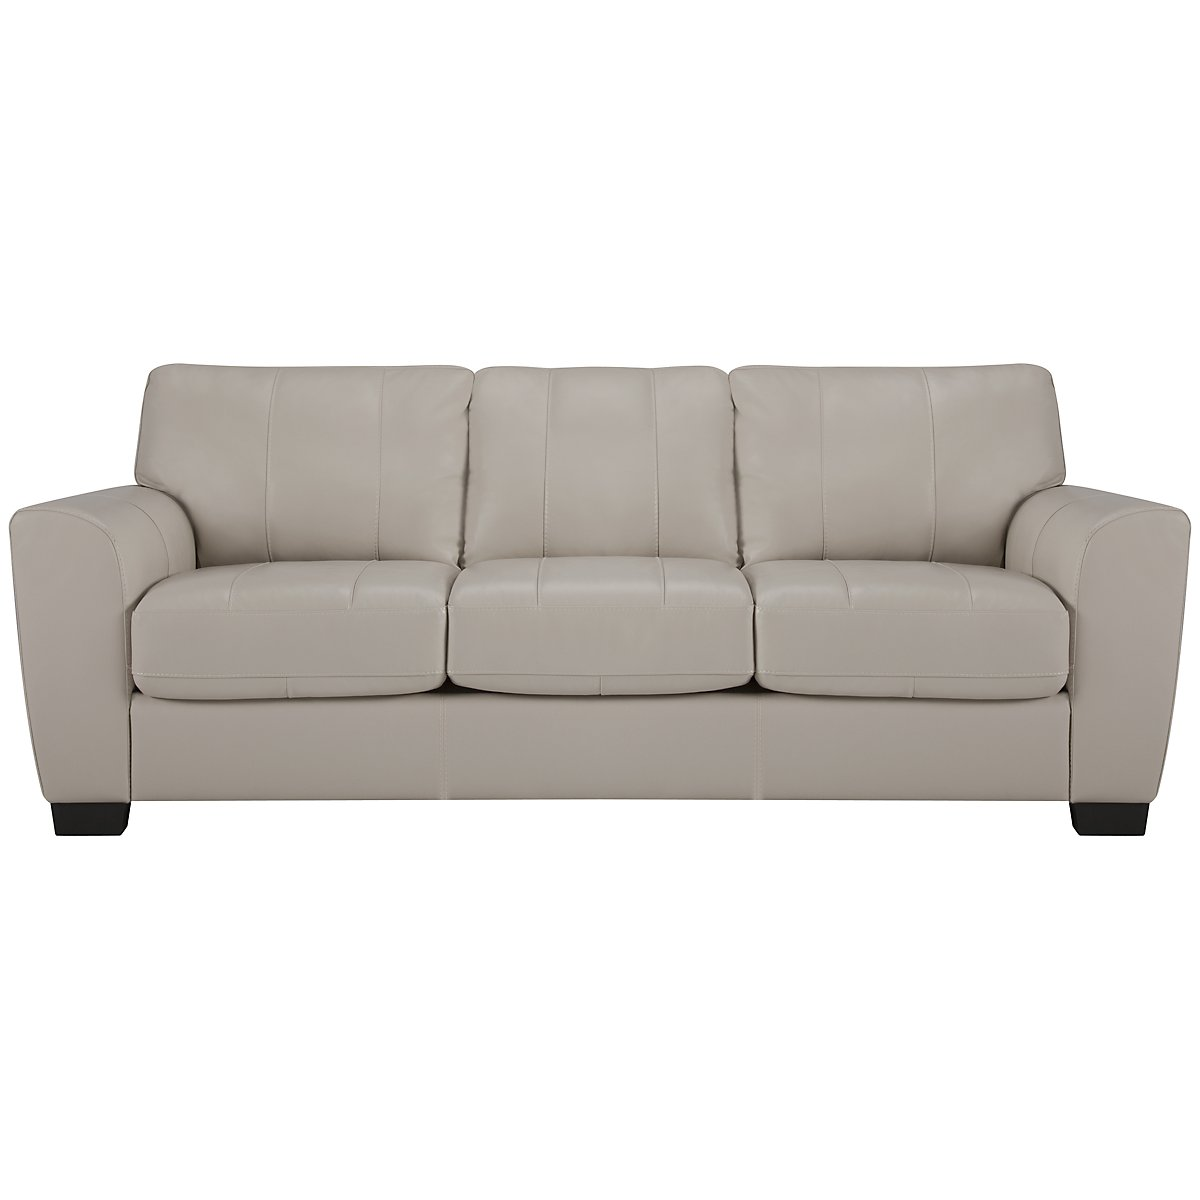 Fallon Lt Gray Leather & Vinyl Sofa